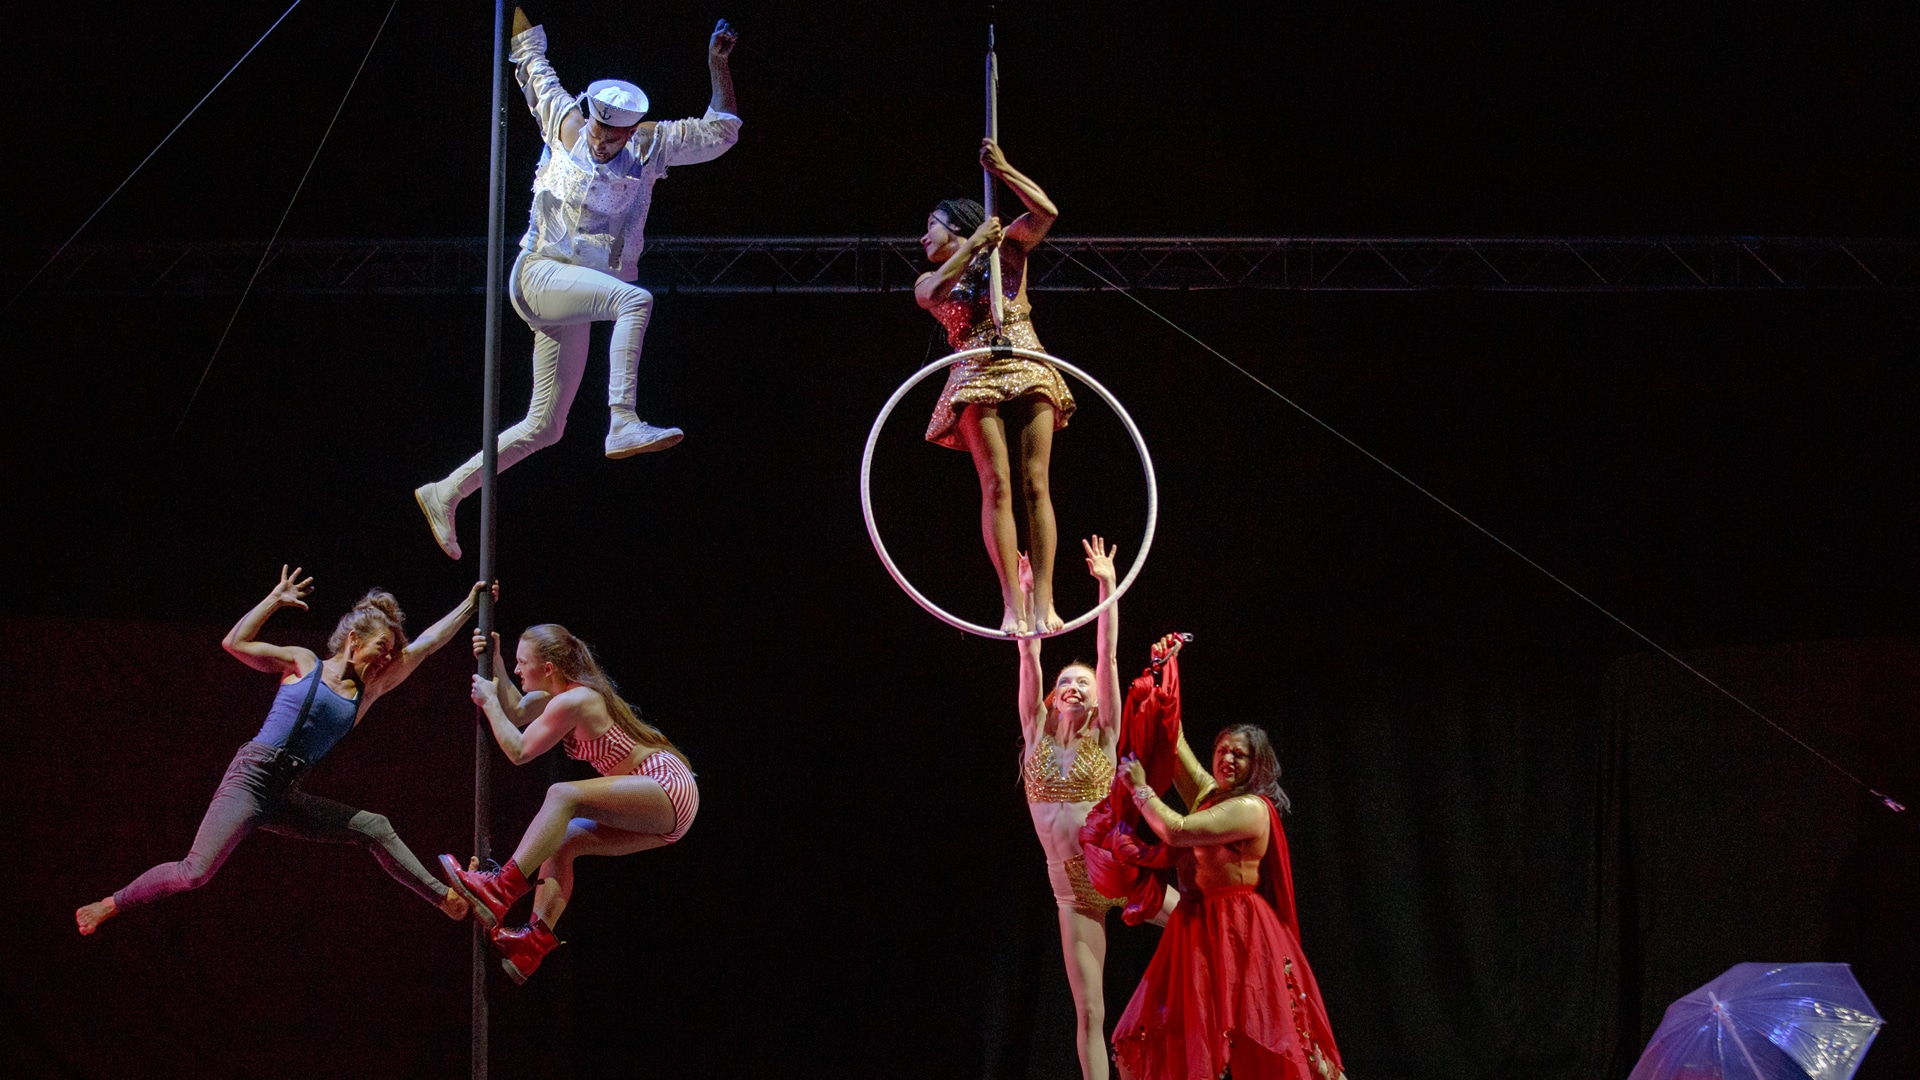 Aerial performers, three handing onto a pole, one stood in a hoop, two others reaching up to the hoop